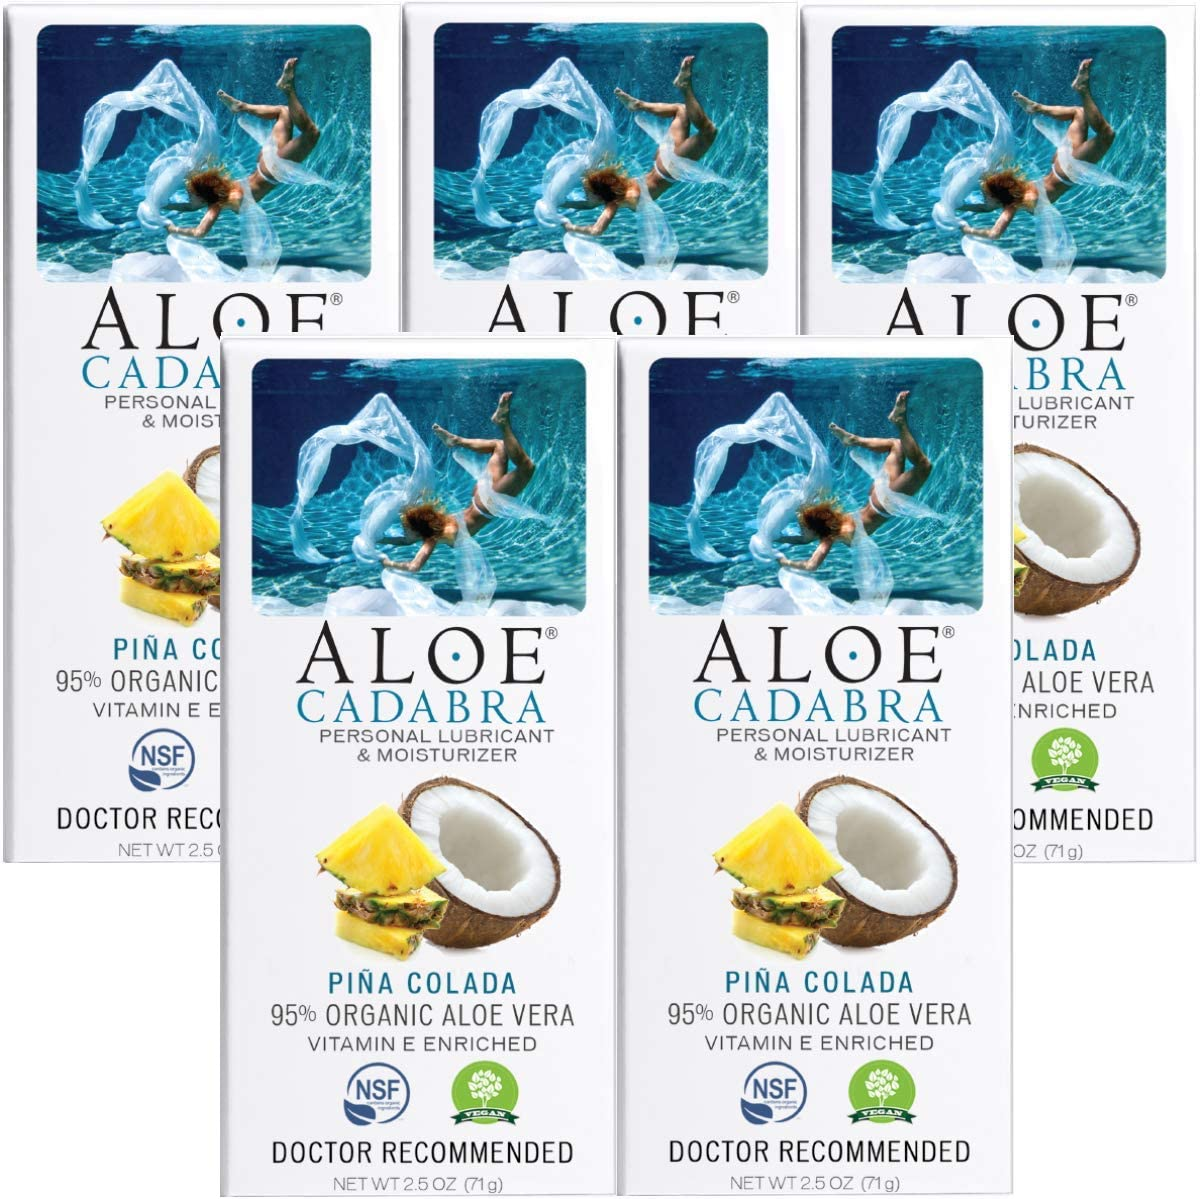 Aloe Cadabra Japan Maker New Edible Pina Colada Attention brand Flavored Natural - All Lubricant